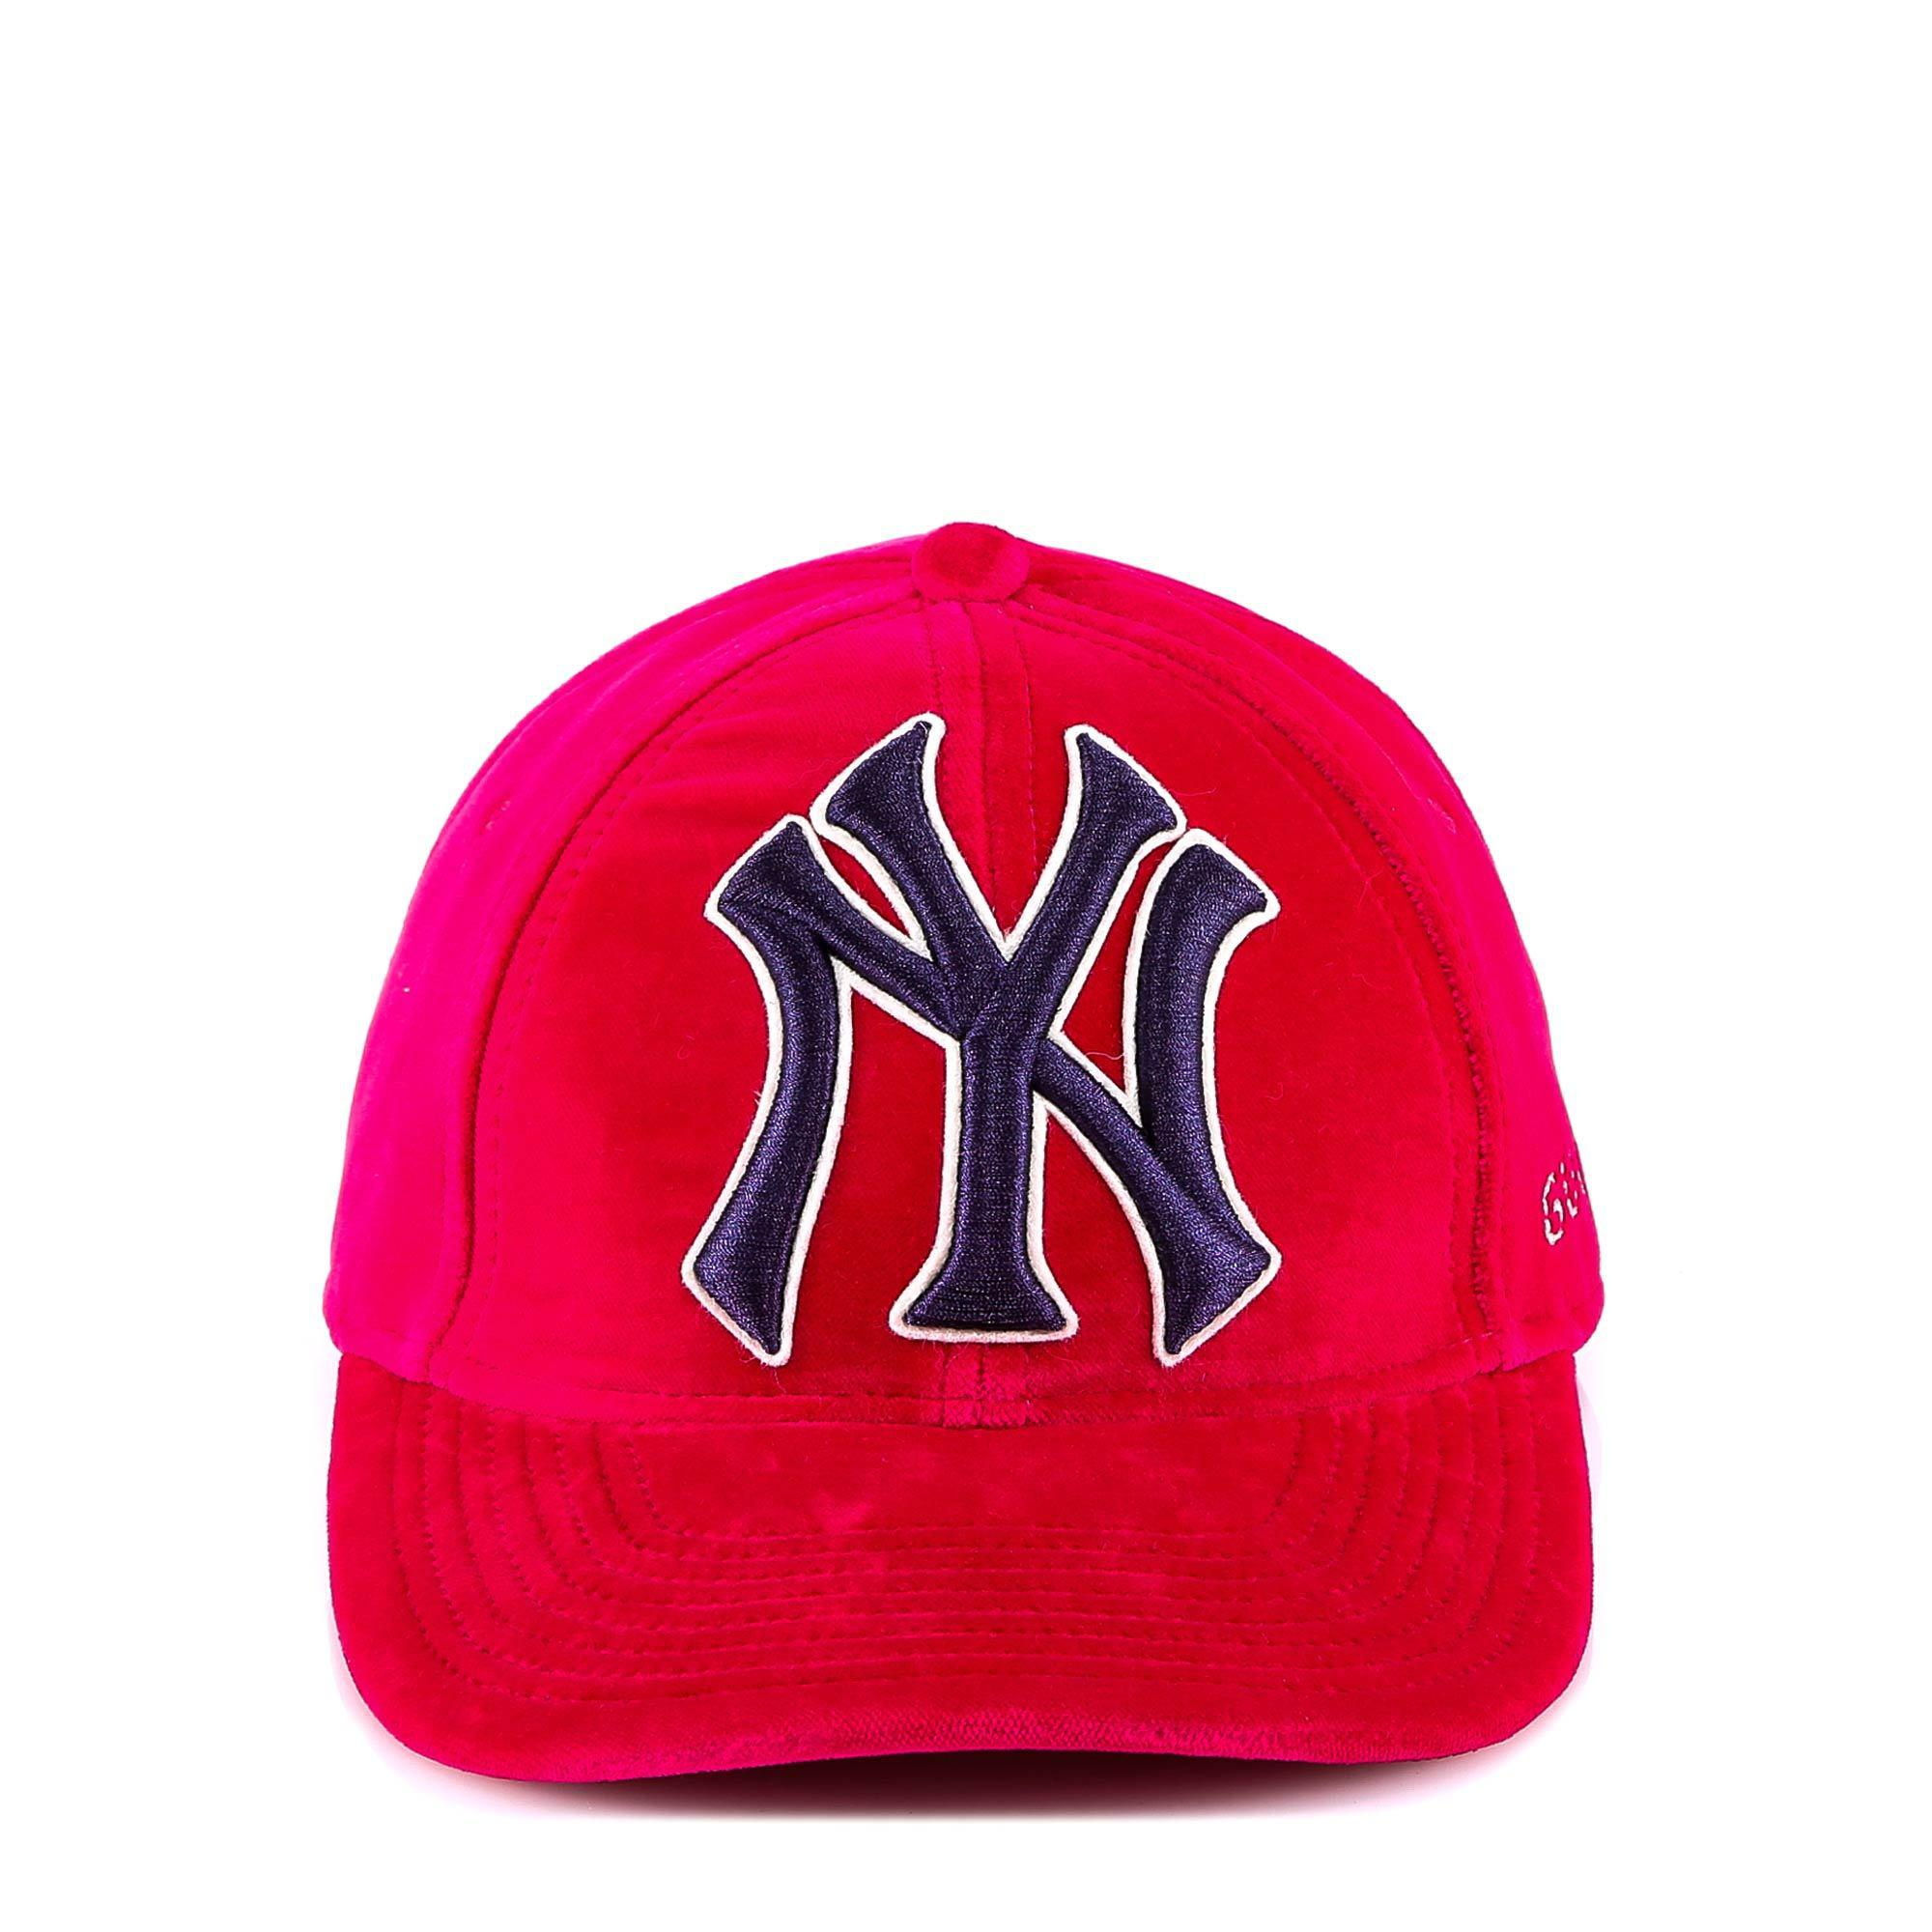 513386ead0a Lyst - Gucci New York Yankees Embroidered Cap in Pink for Men